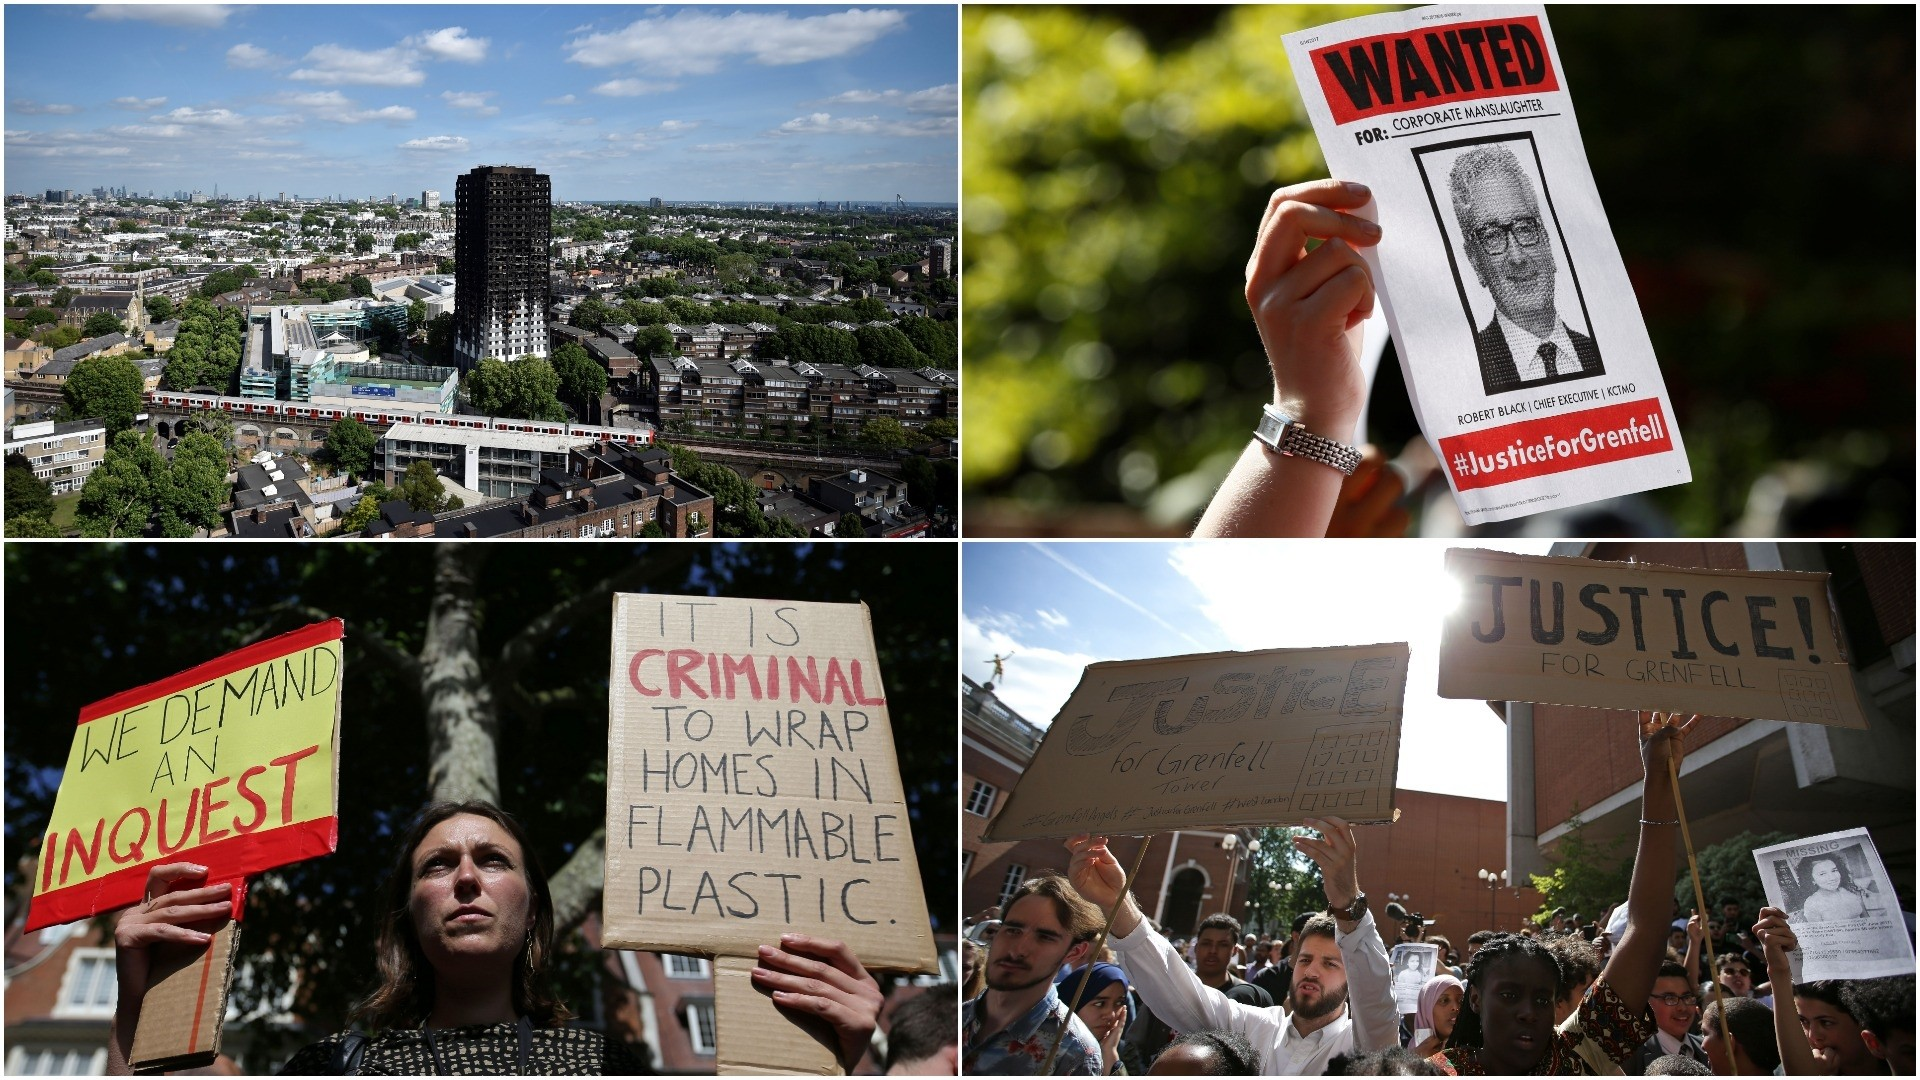 People gather outside Kensington Town Hall on June 16, 2017, to demand justice for those affected by the fire that gutted Grenfell Tower. (AFP/ REUTERS Photos)